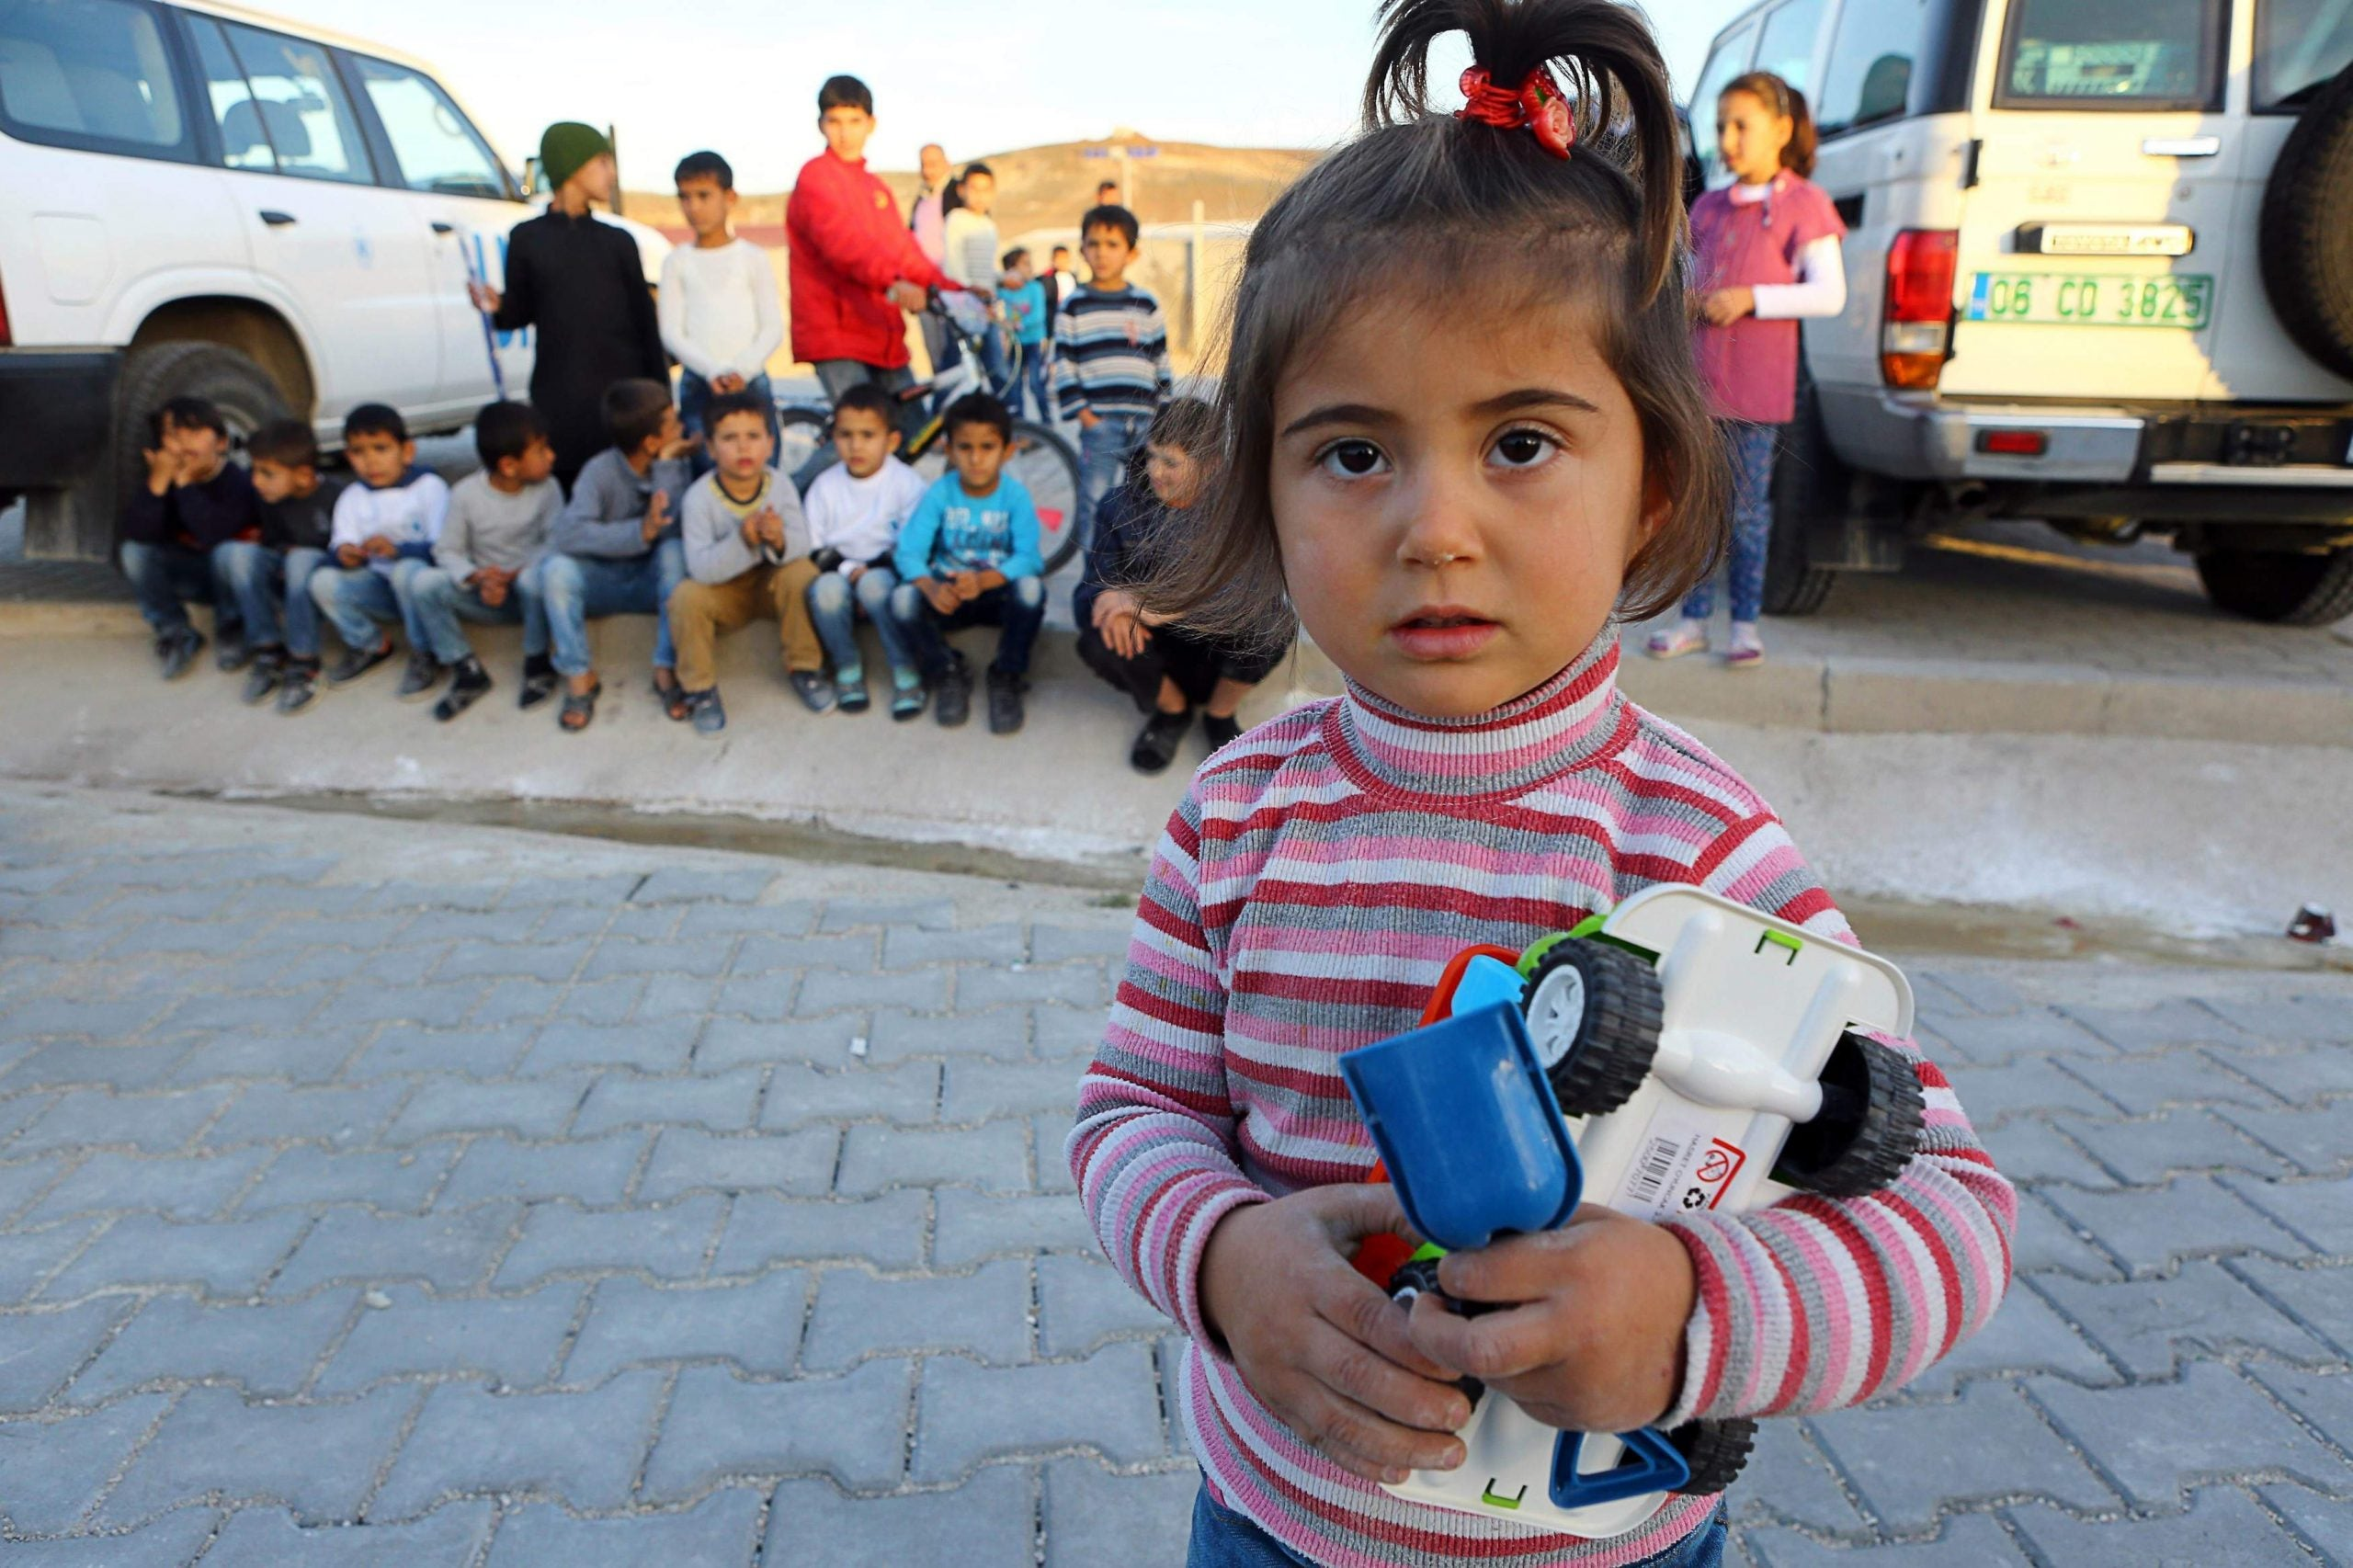 For many refugees, fleeing violence also means losing their families